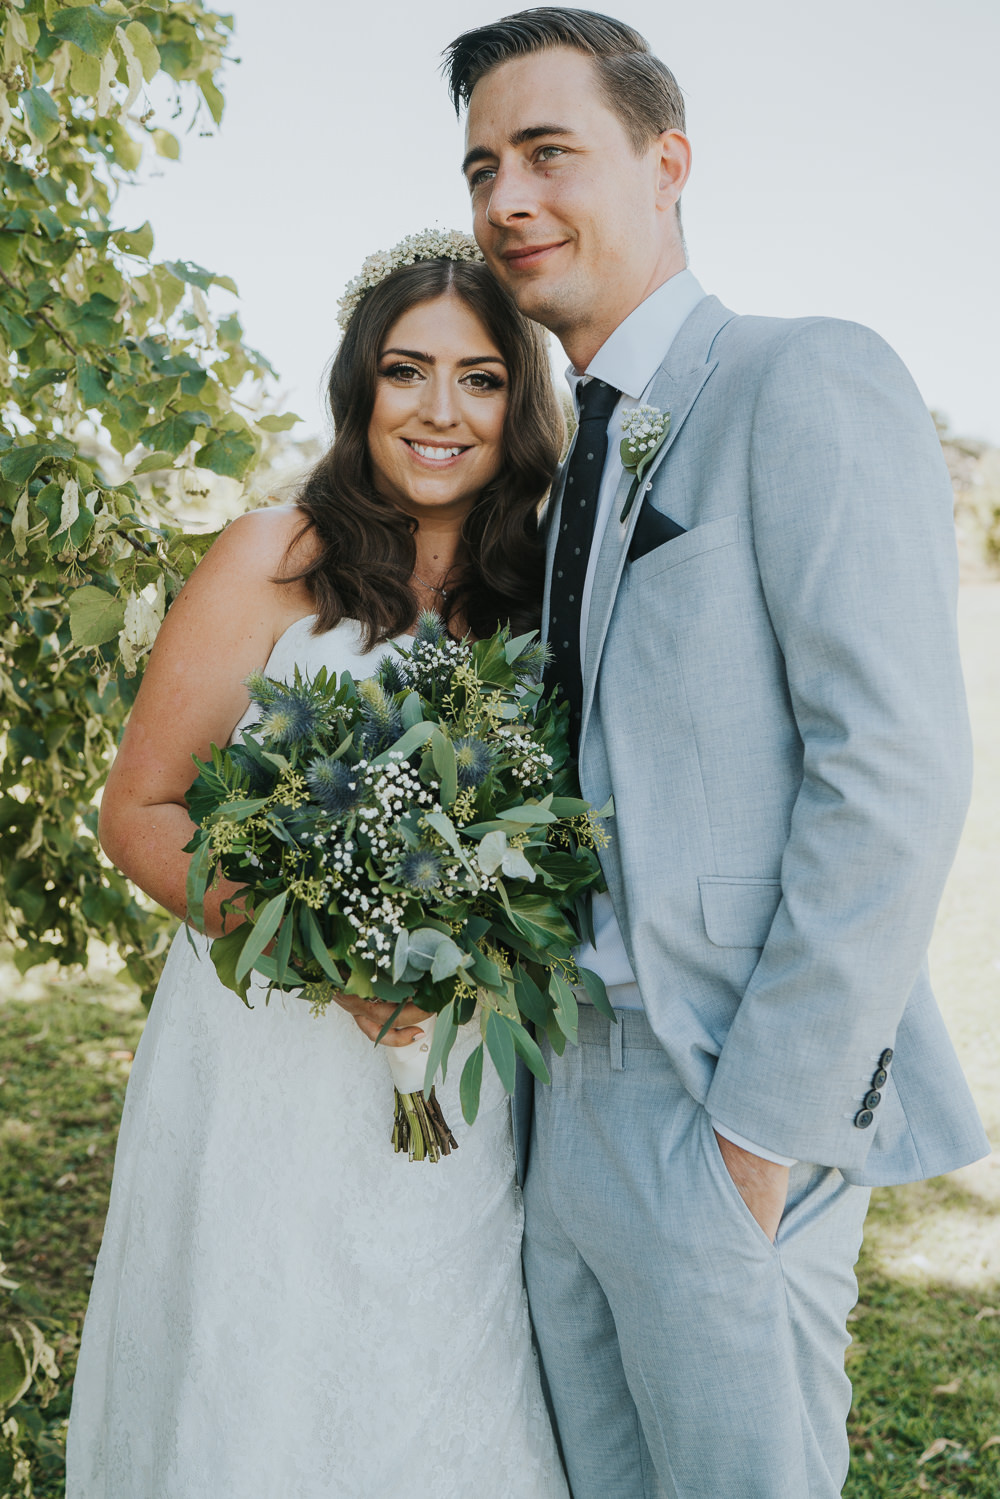 Intimate Outdoor Natural Relaxed Laid Back Summer Bride Groom Greenery Foliage Bouquet | Prested Hall Wedding Grace Elizabeth Photography